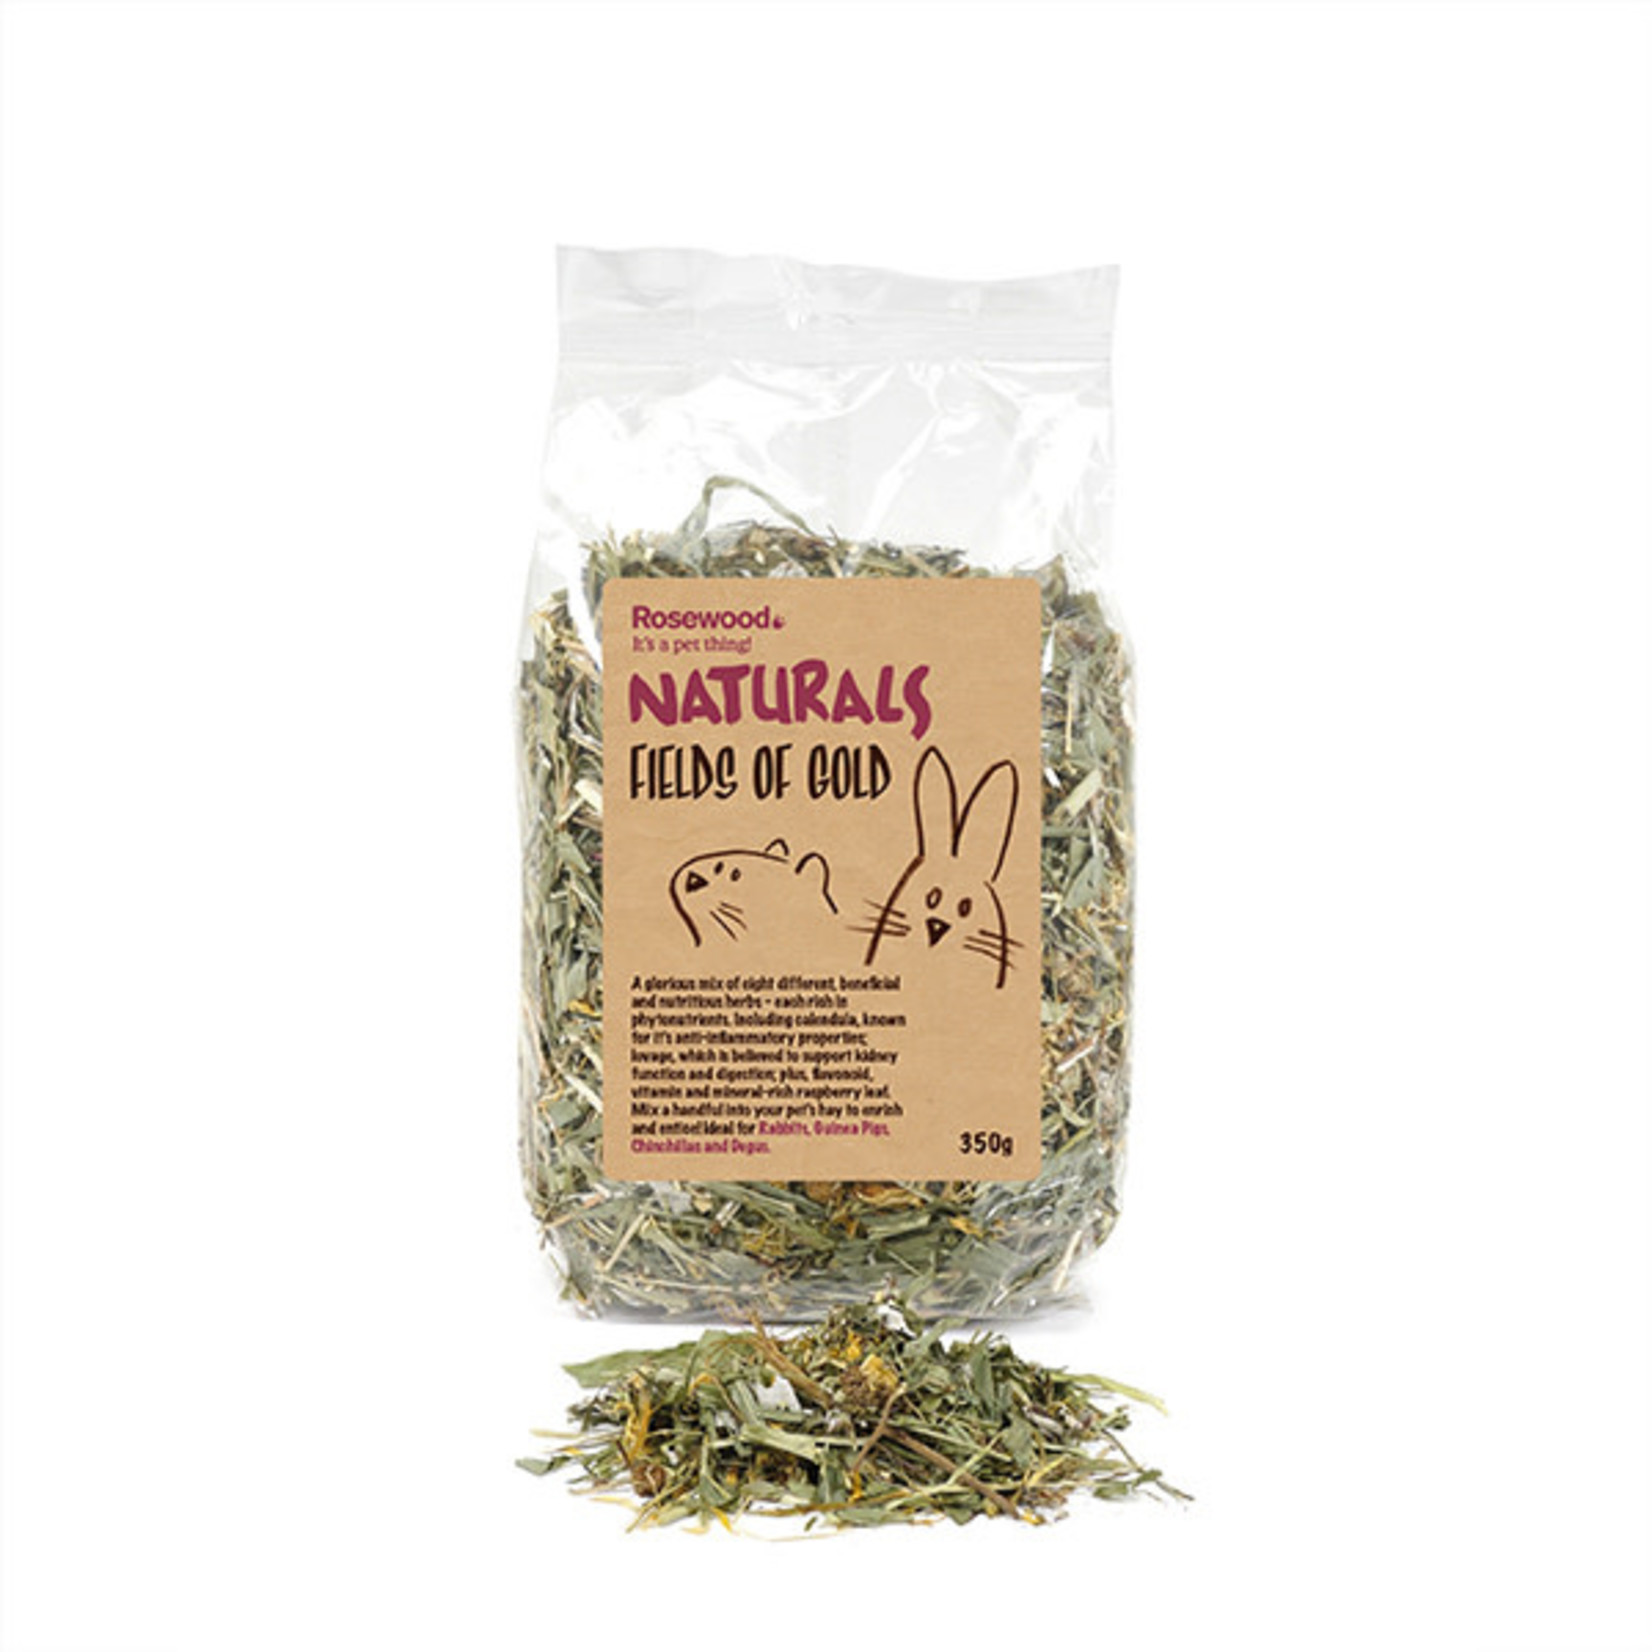 Rosewood Boredom Breaker Naturals Fields of Gold Small Animal Treat, 350g